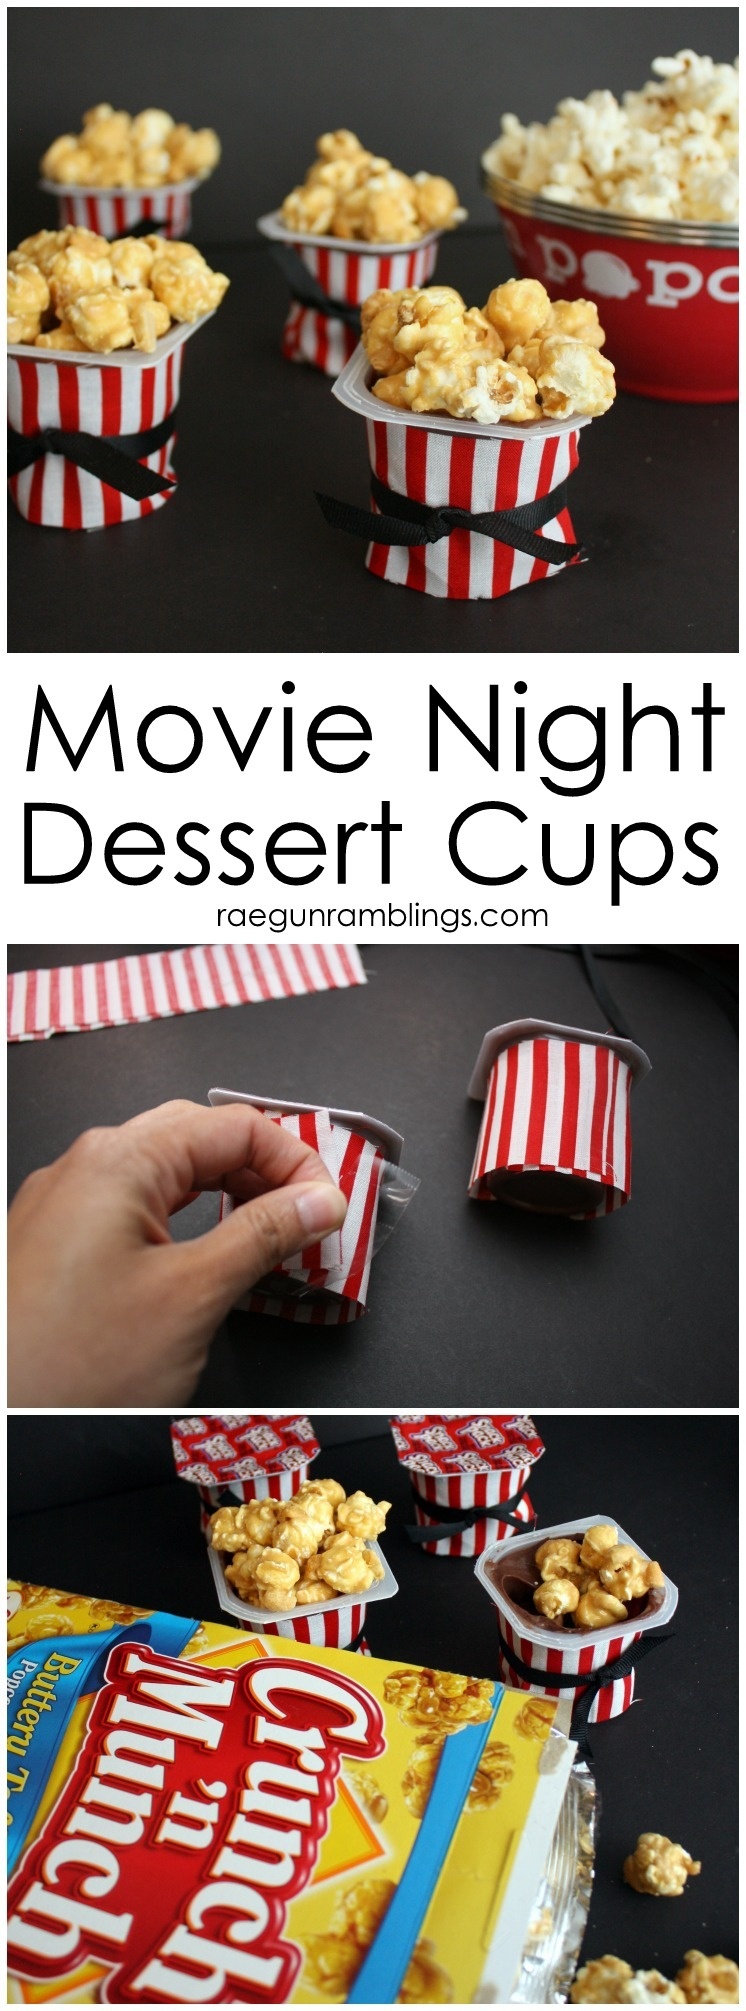 How to make Movie Night treat cups in less than 5 minutes.